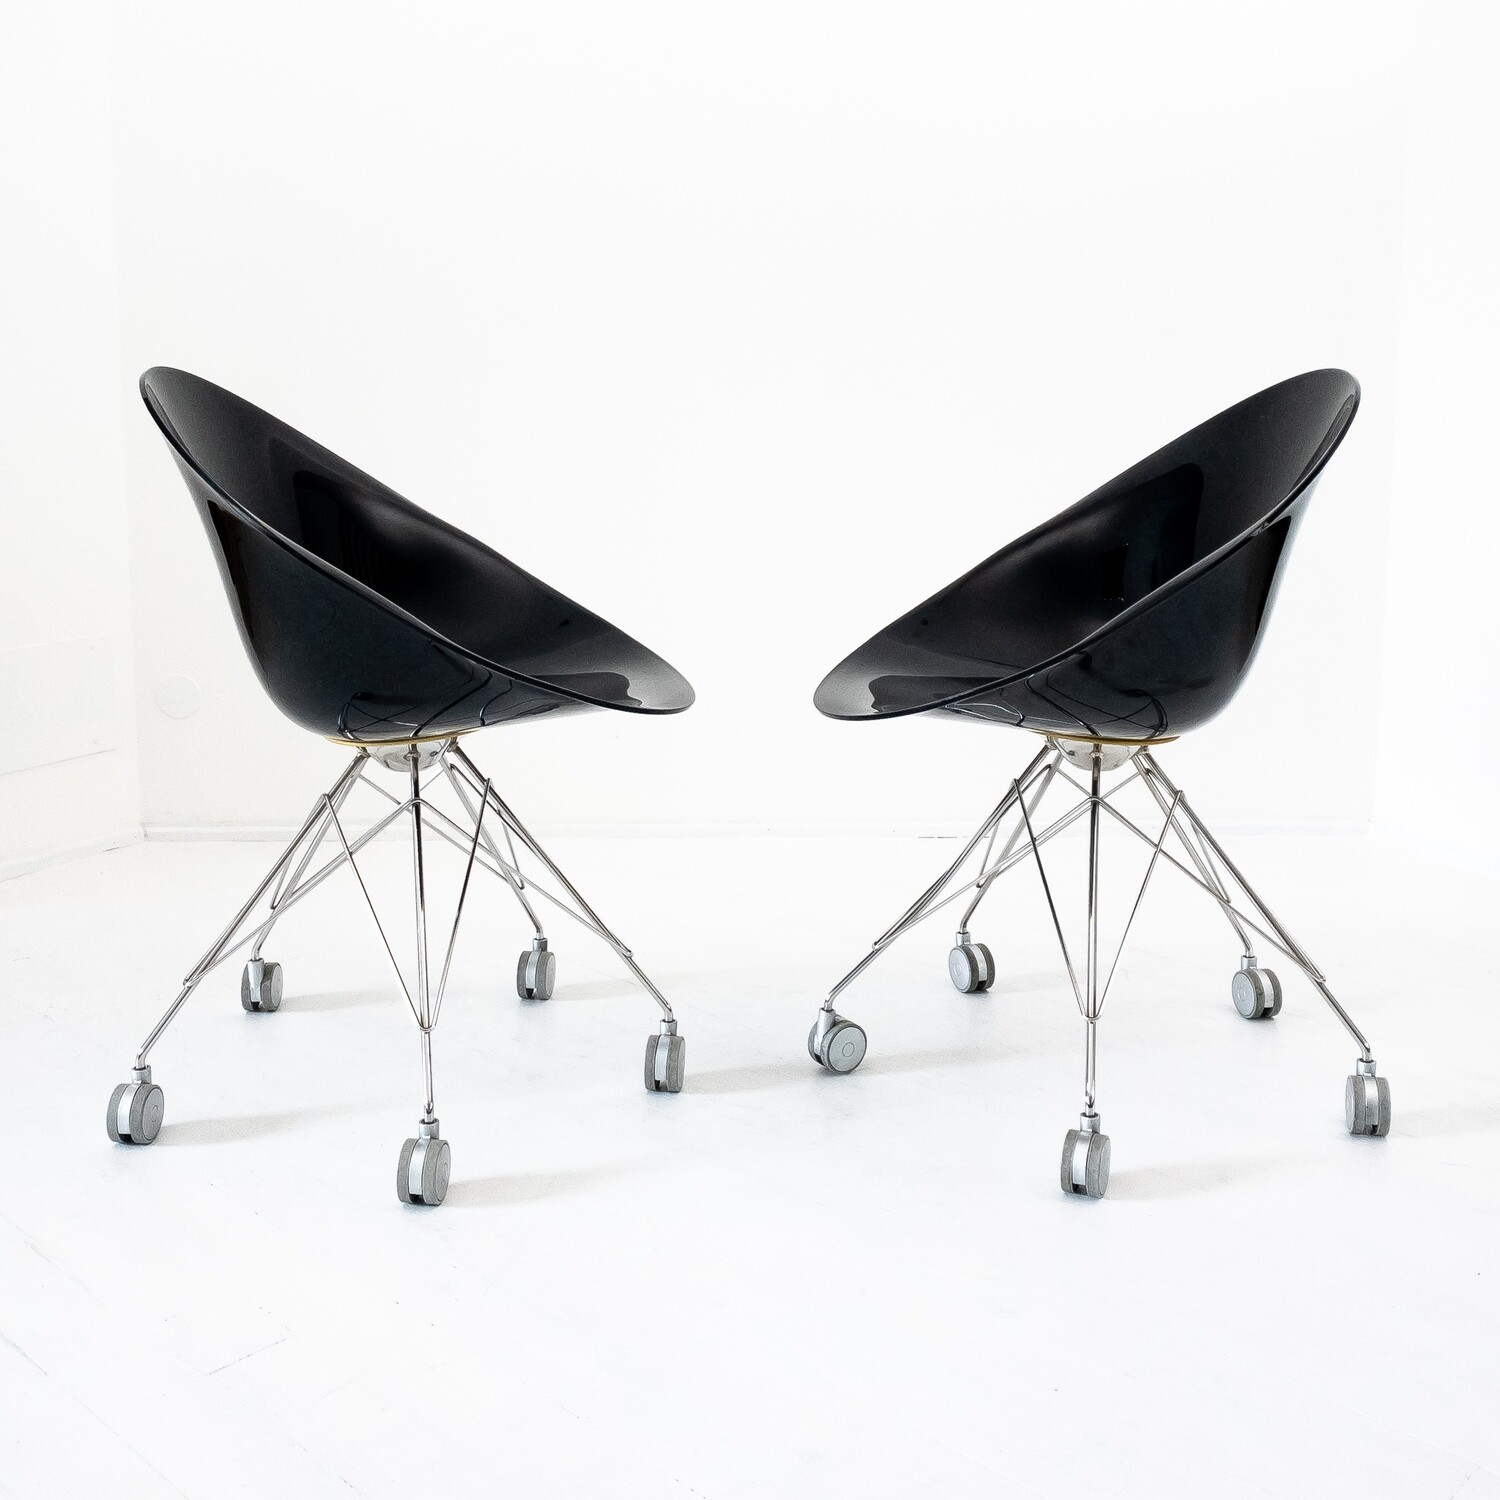 Eros chair by Kartell by Philippe Starck